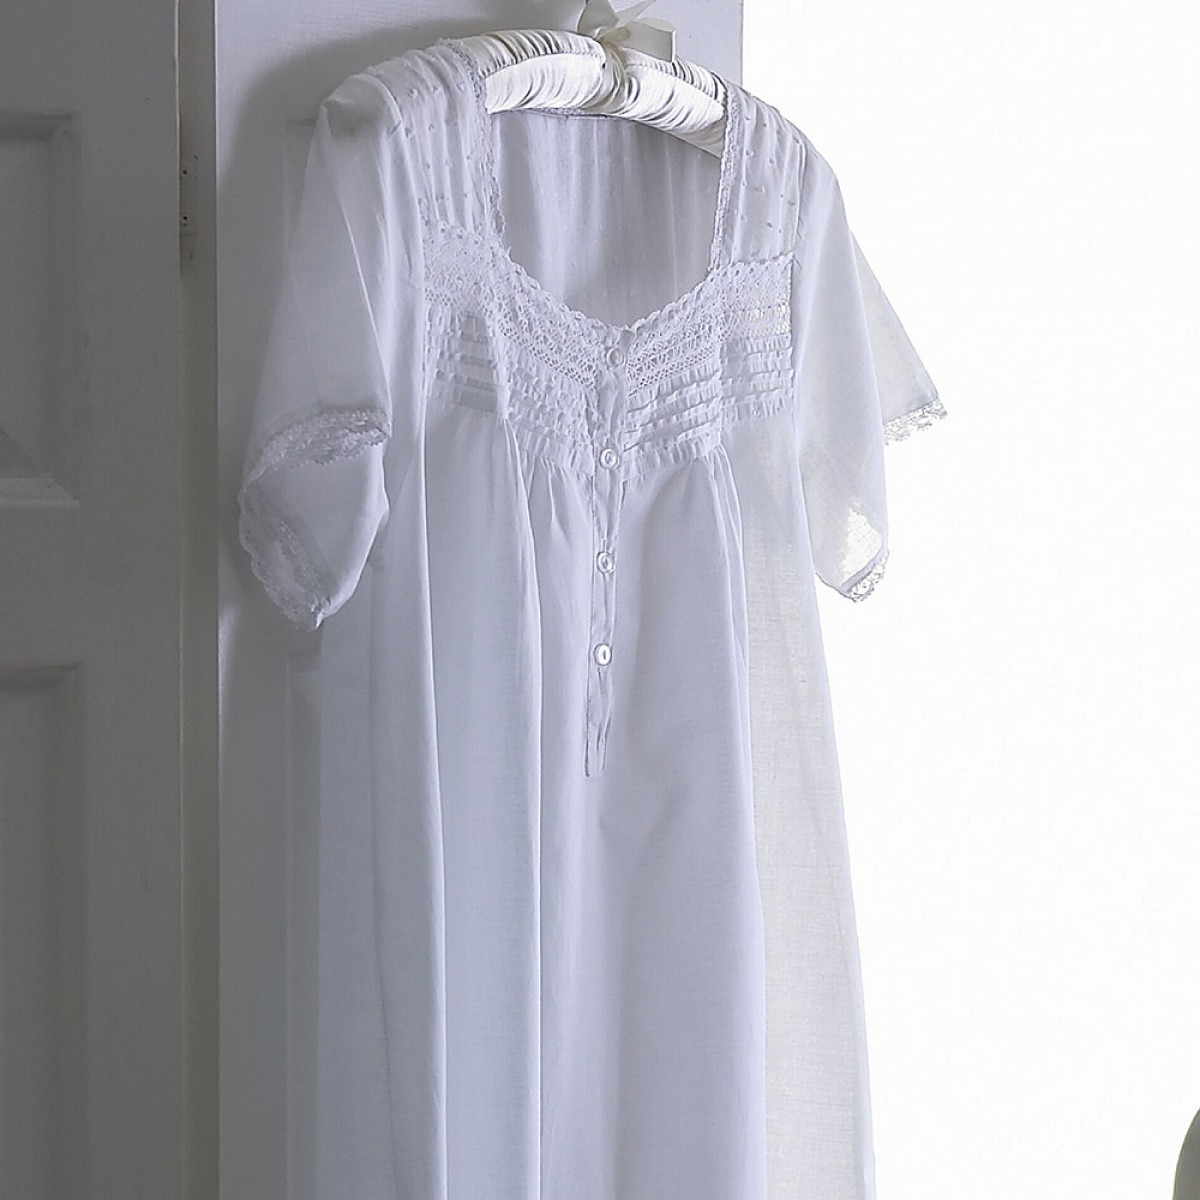 Alice nightdress